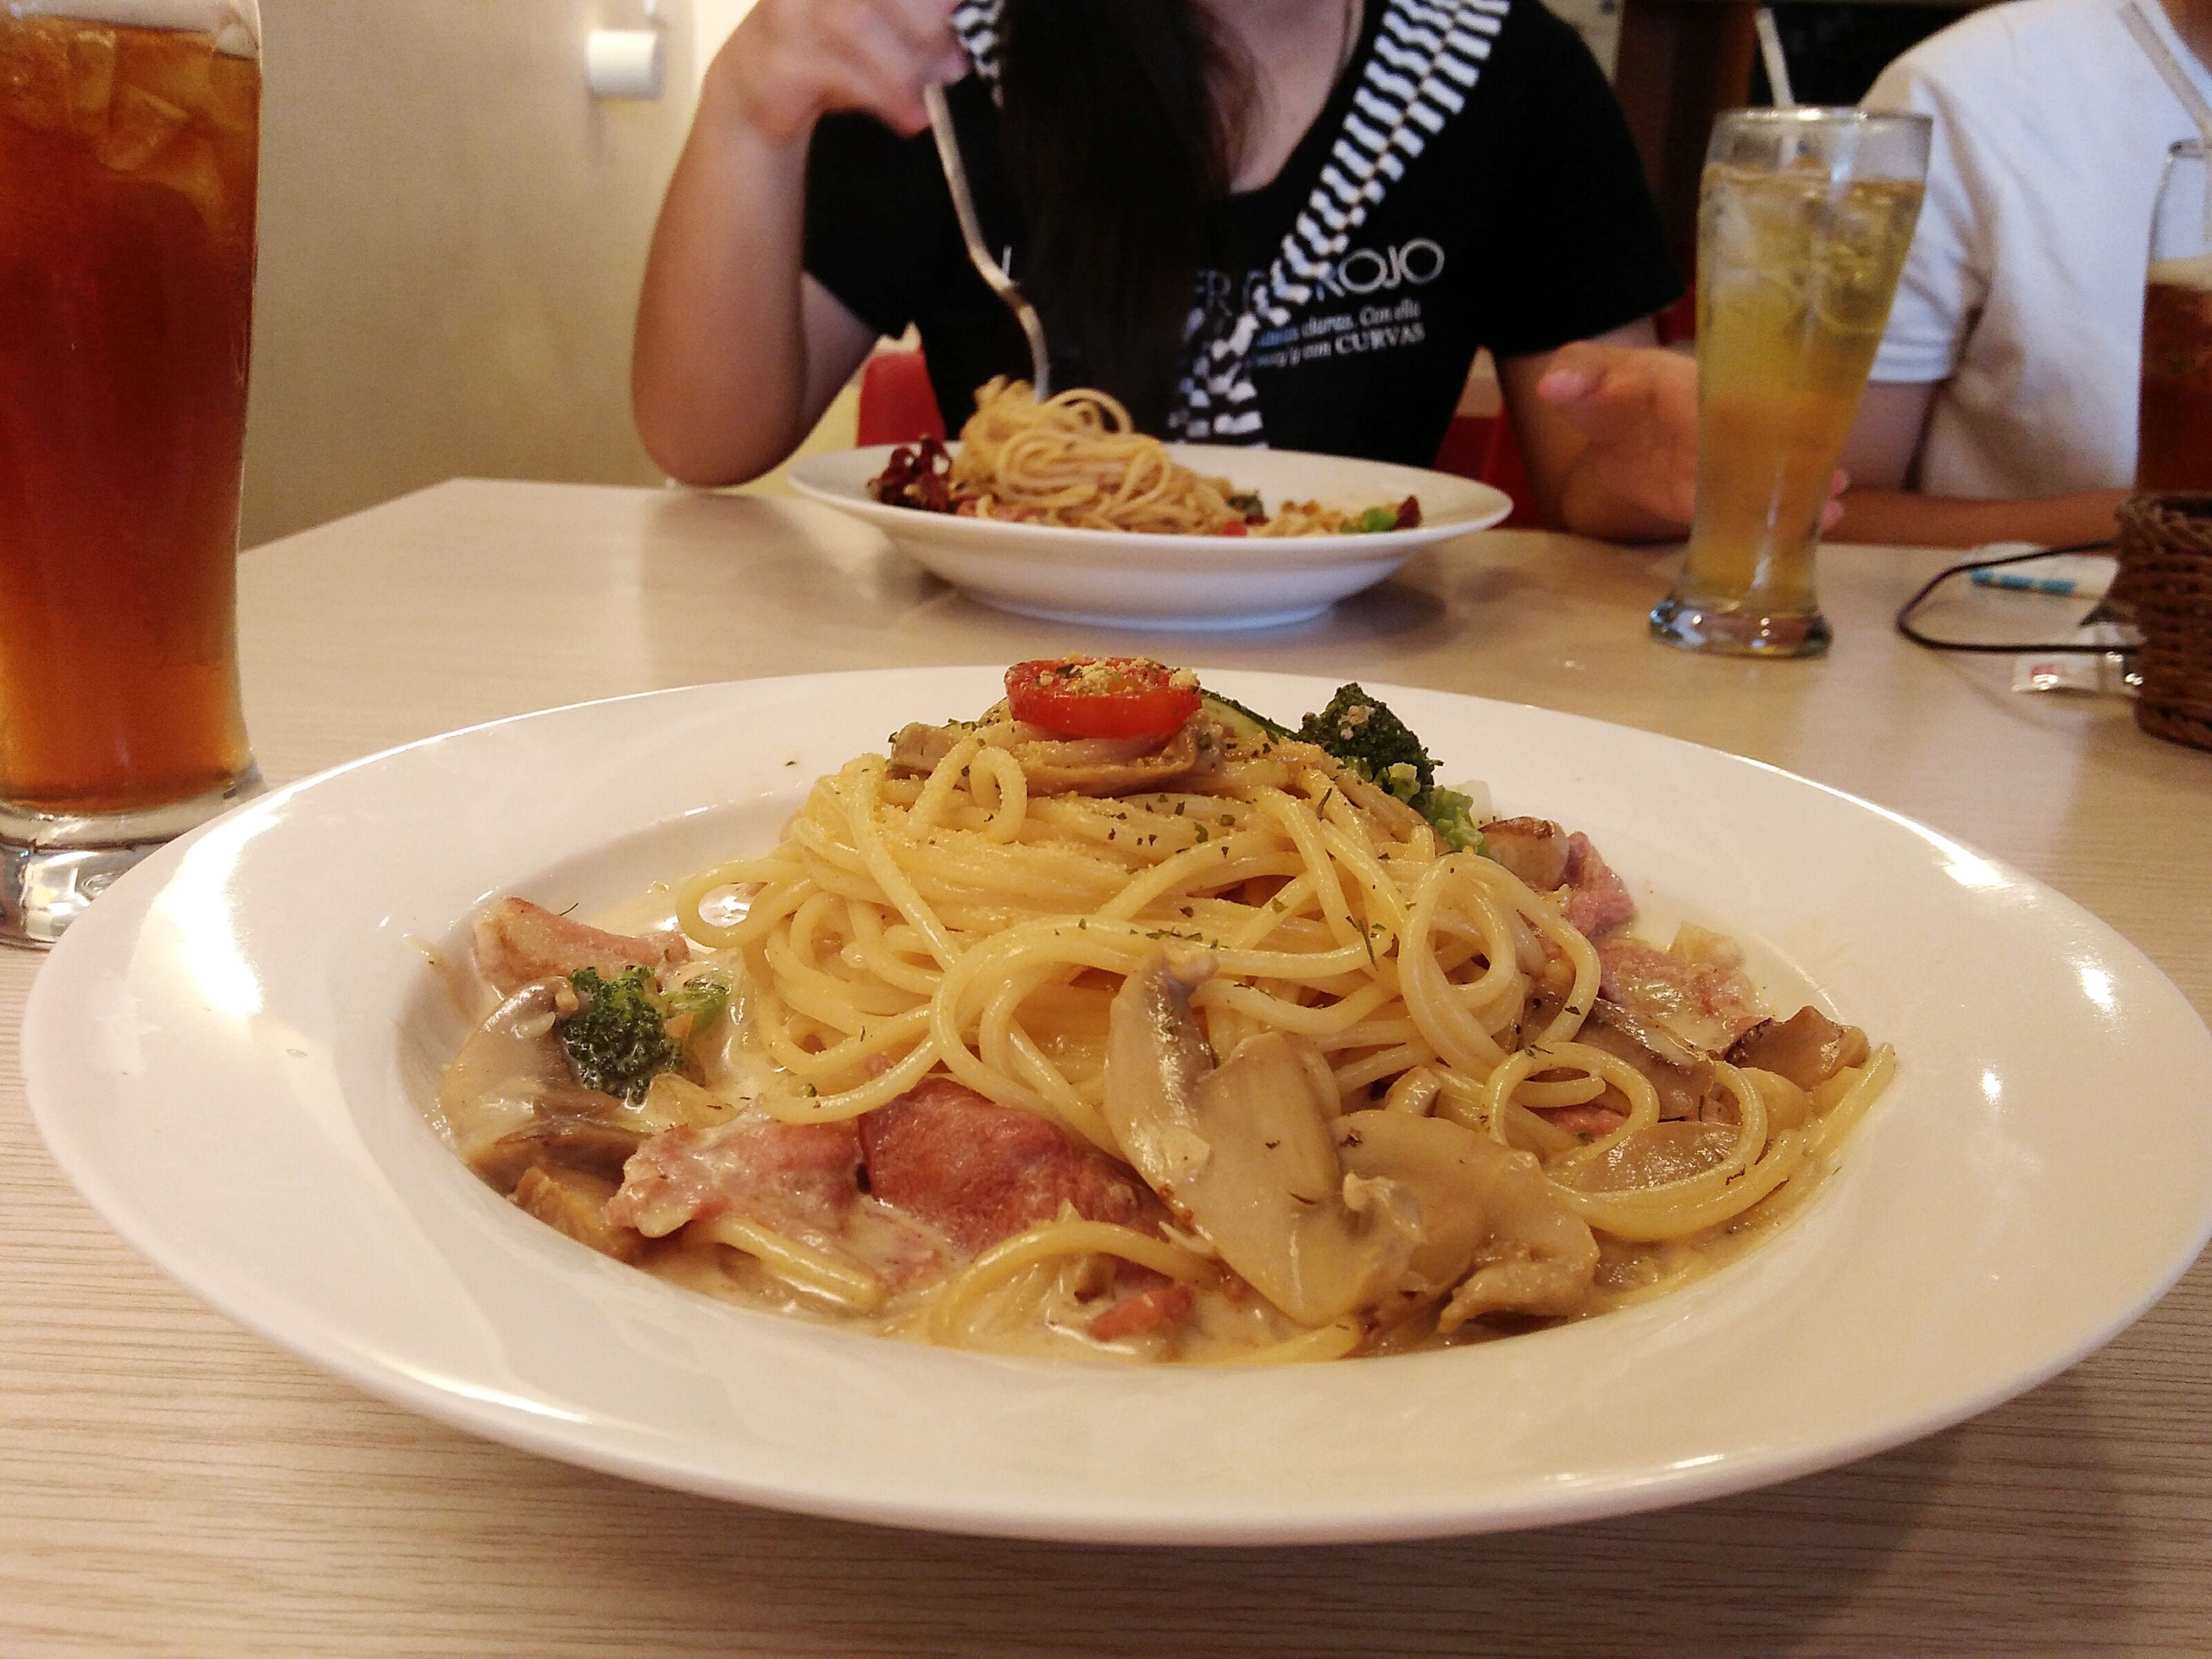 food and drink, plate, table, food, freshness, serving size, indoors, real people, fork, spaghetti, drinking glass, meal, drink, italian food, one person, healthy eating, ready-to-eat, close-up, human hand, day, people